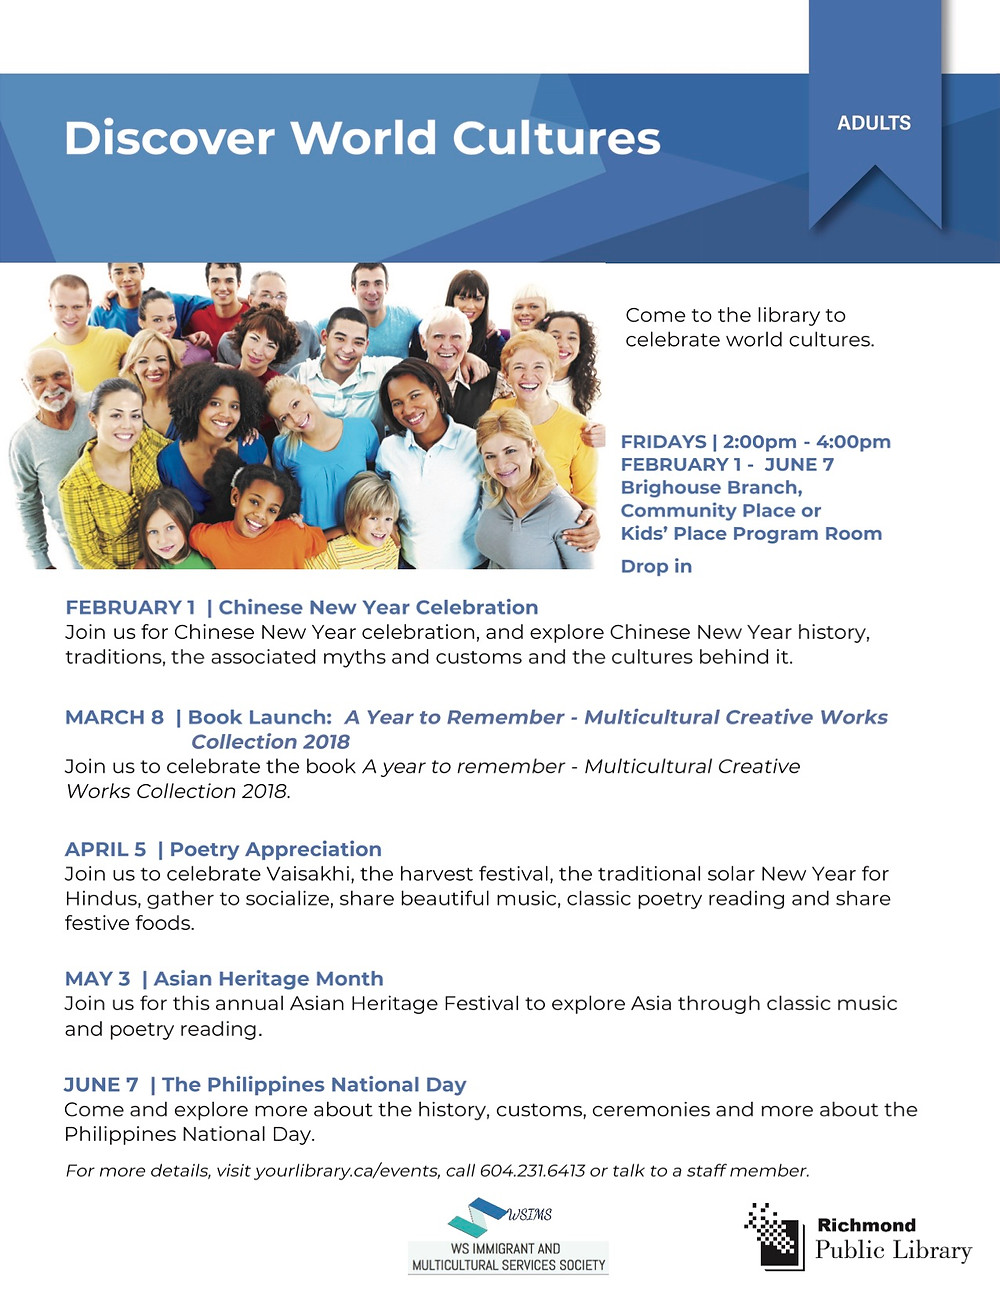 Discover World Culture Series -- Filipino Heritage Month Celebration